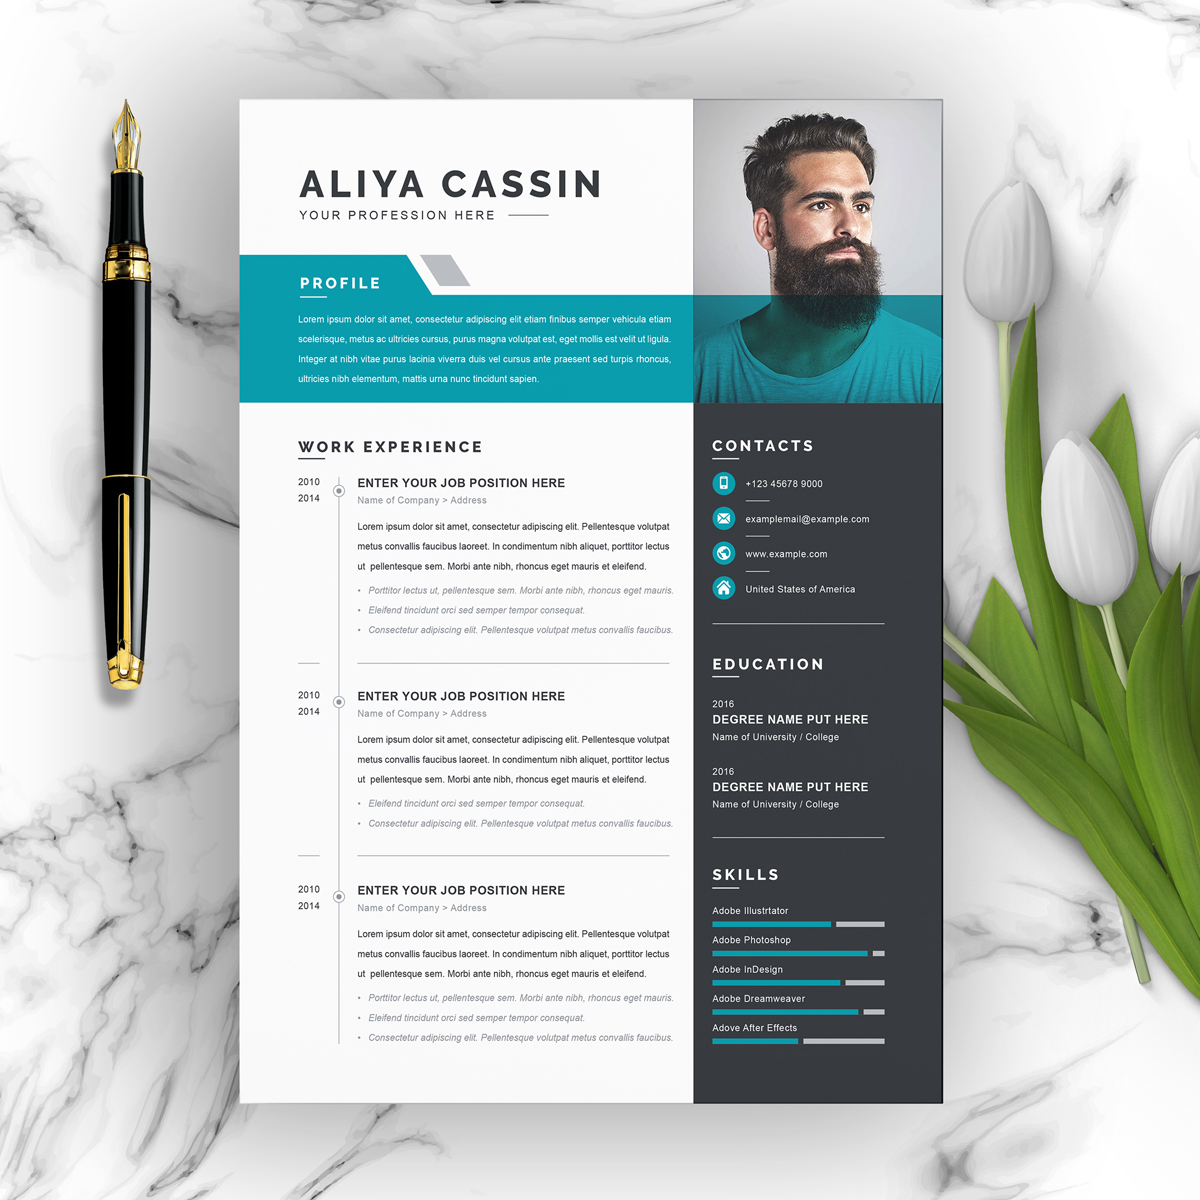 https://s3u.tmimgcdn.com/1860567-1583588749578_01_Clean-Professional-Creative-and-Modern-Resume-CV-Curriculum-Vitae-Design-Template-MS-Word-Apple-Pages-PSD-Free-Download.jpg